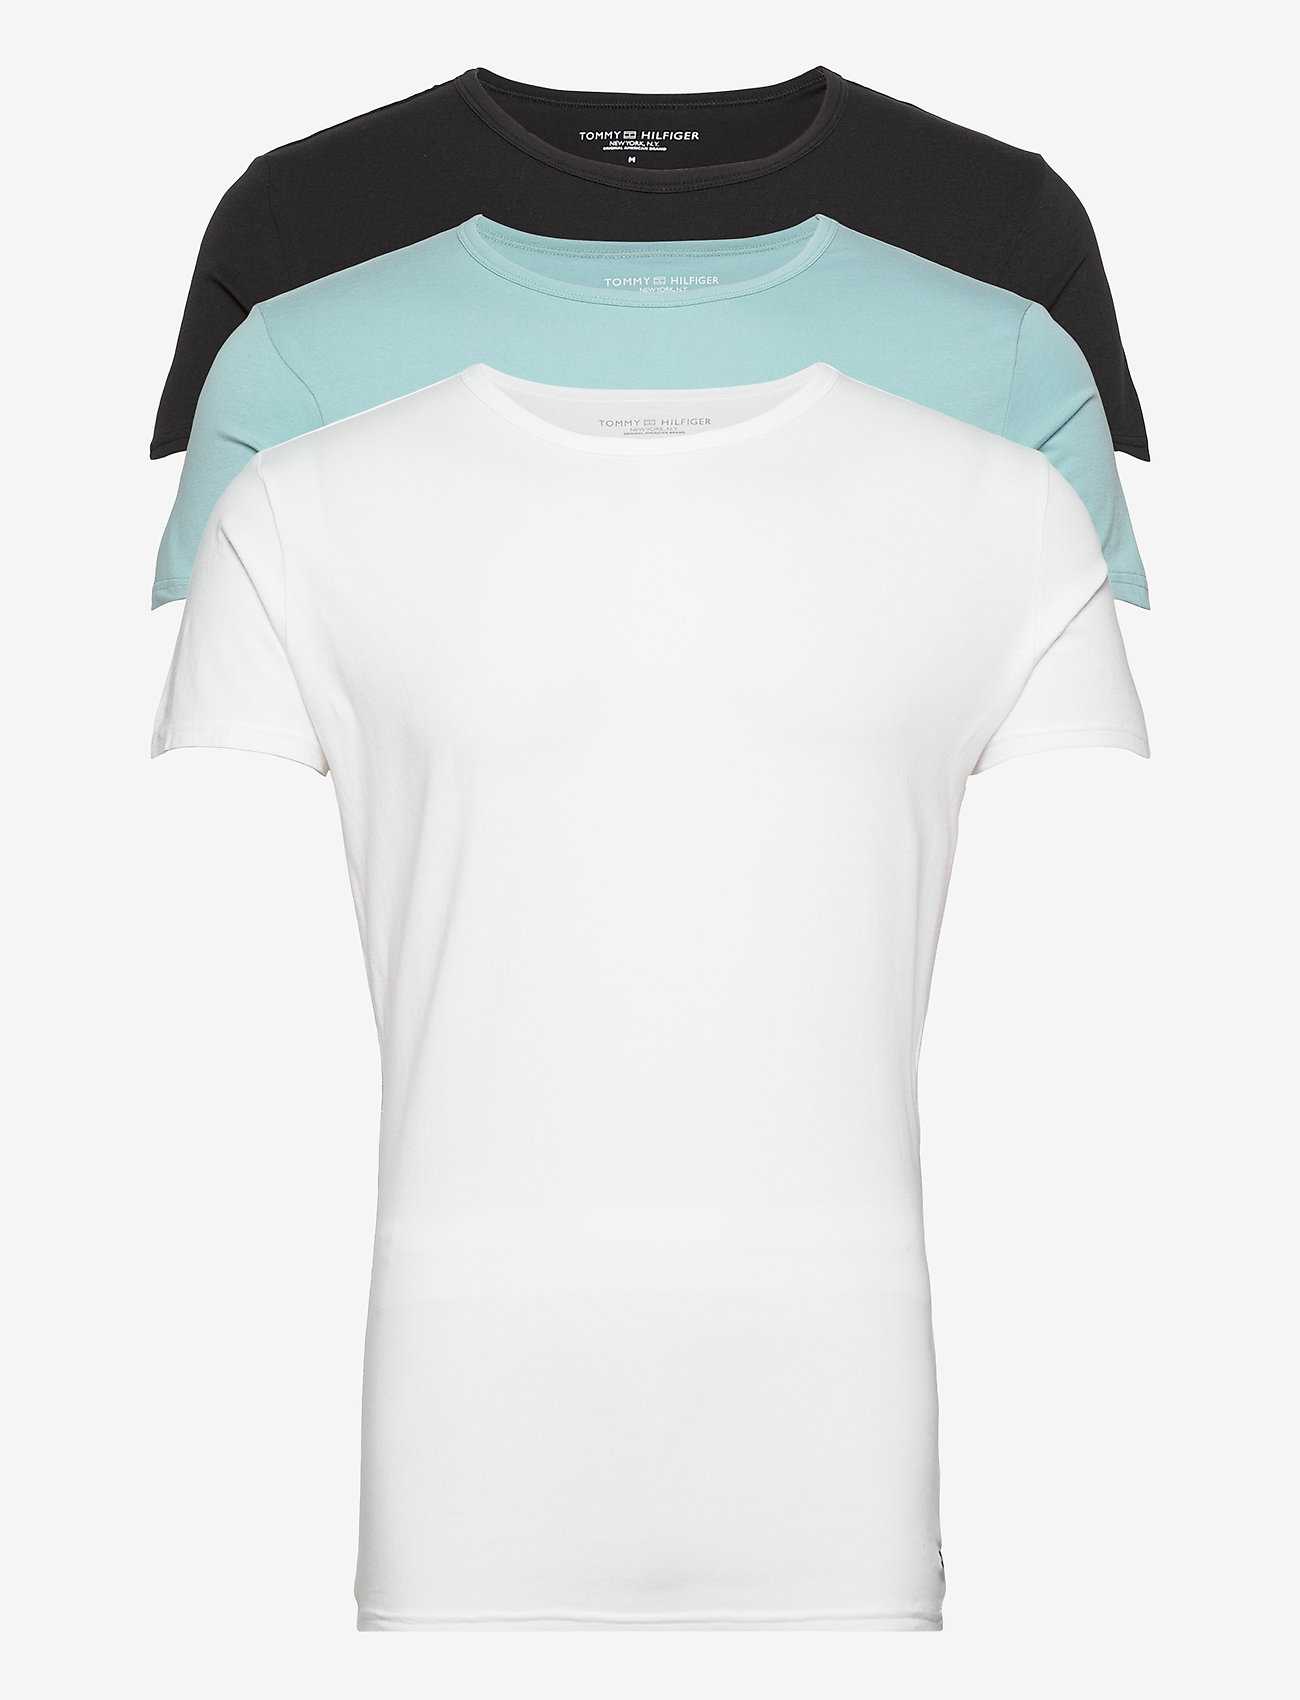 Tommy Hilfiger - STRETCH CN TEE SS 3PACK - multipack - black/sumit/white - 0